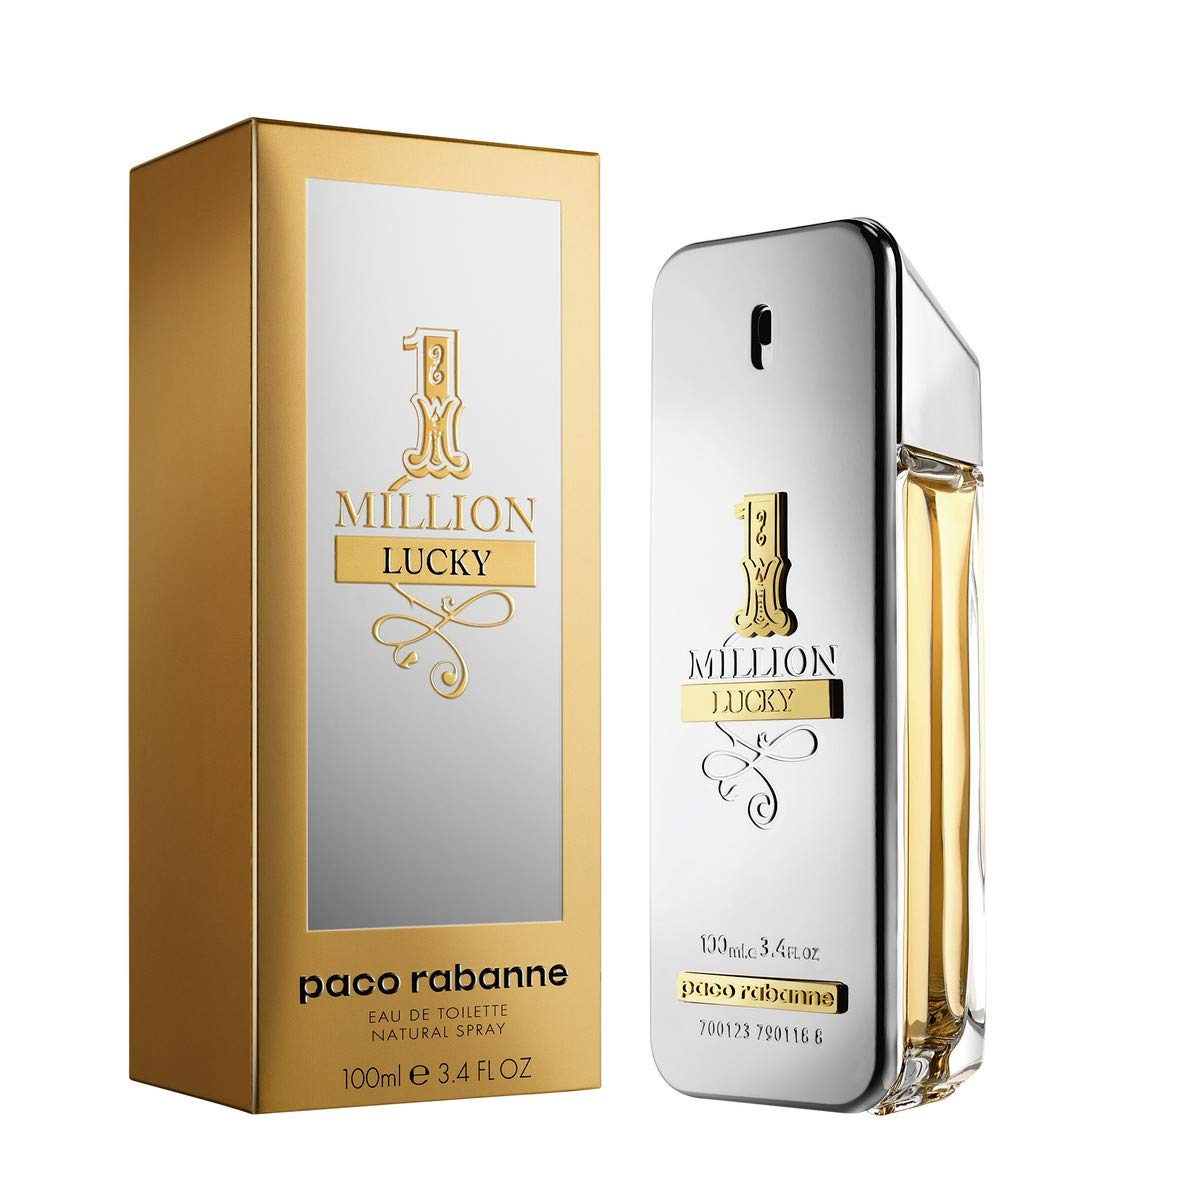 1 Million Lucky by Paco Rabanne Eau de Toilette Spray 100ml by paco rabanne (Image #2)